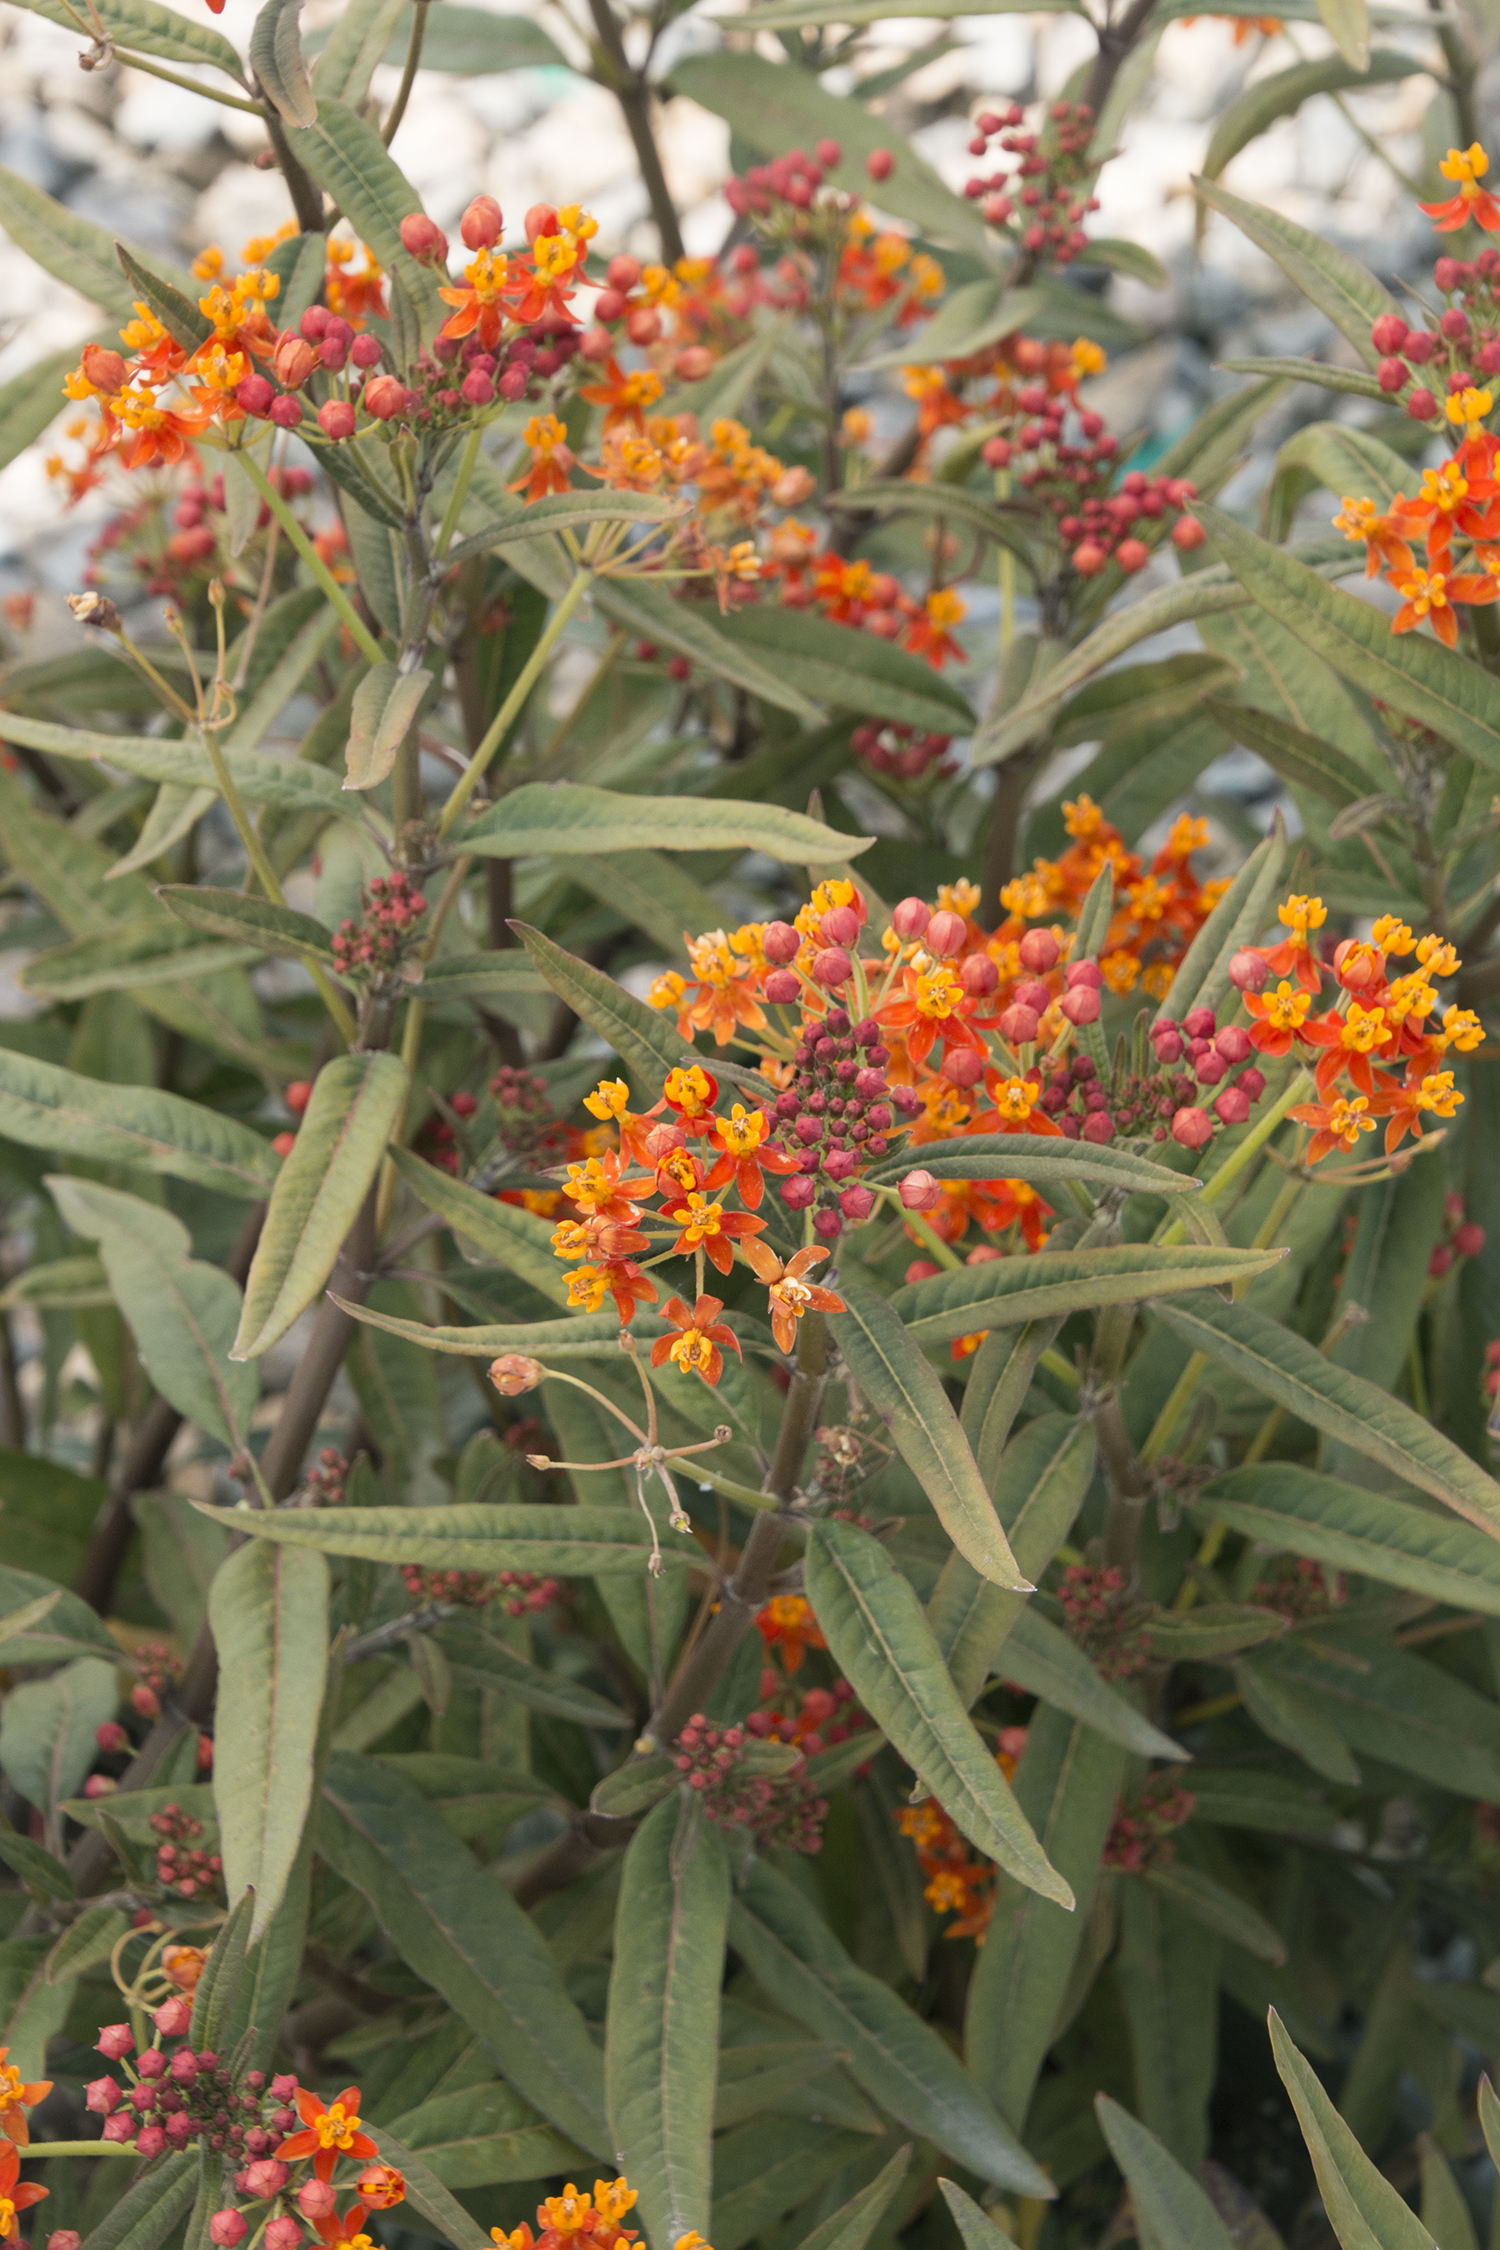 Asclepias tuberosa a.k.a. butterfly weed